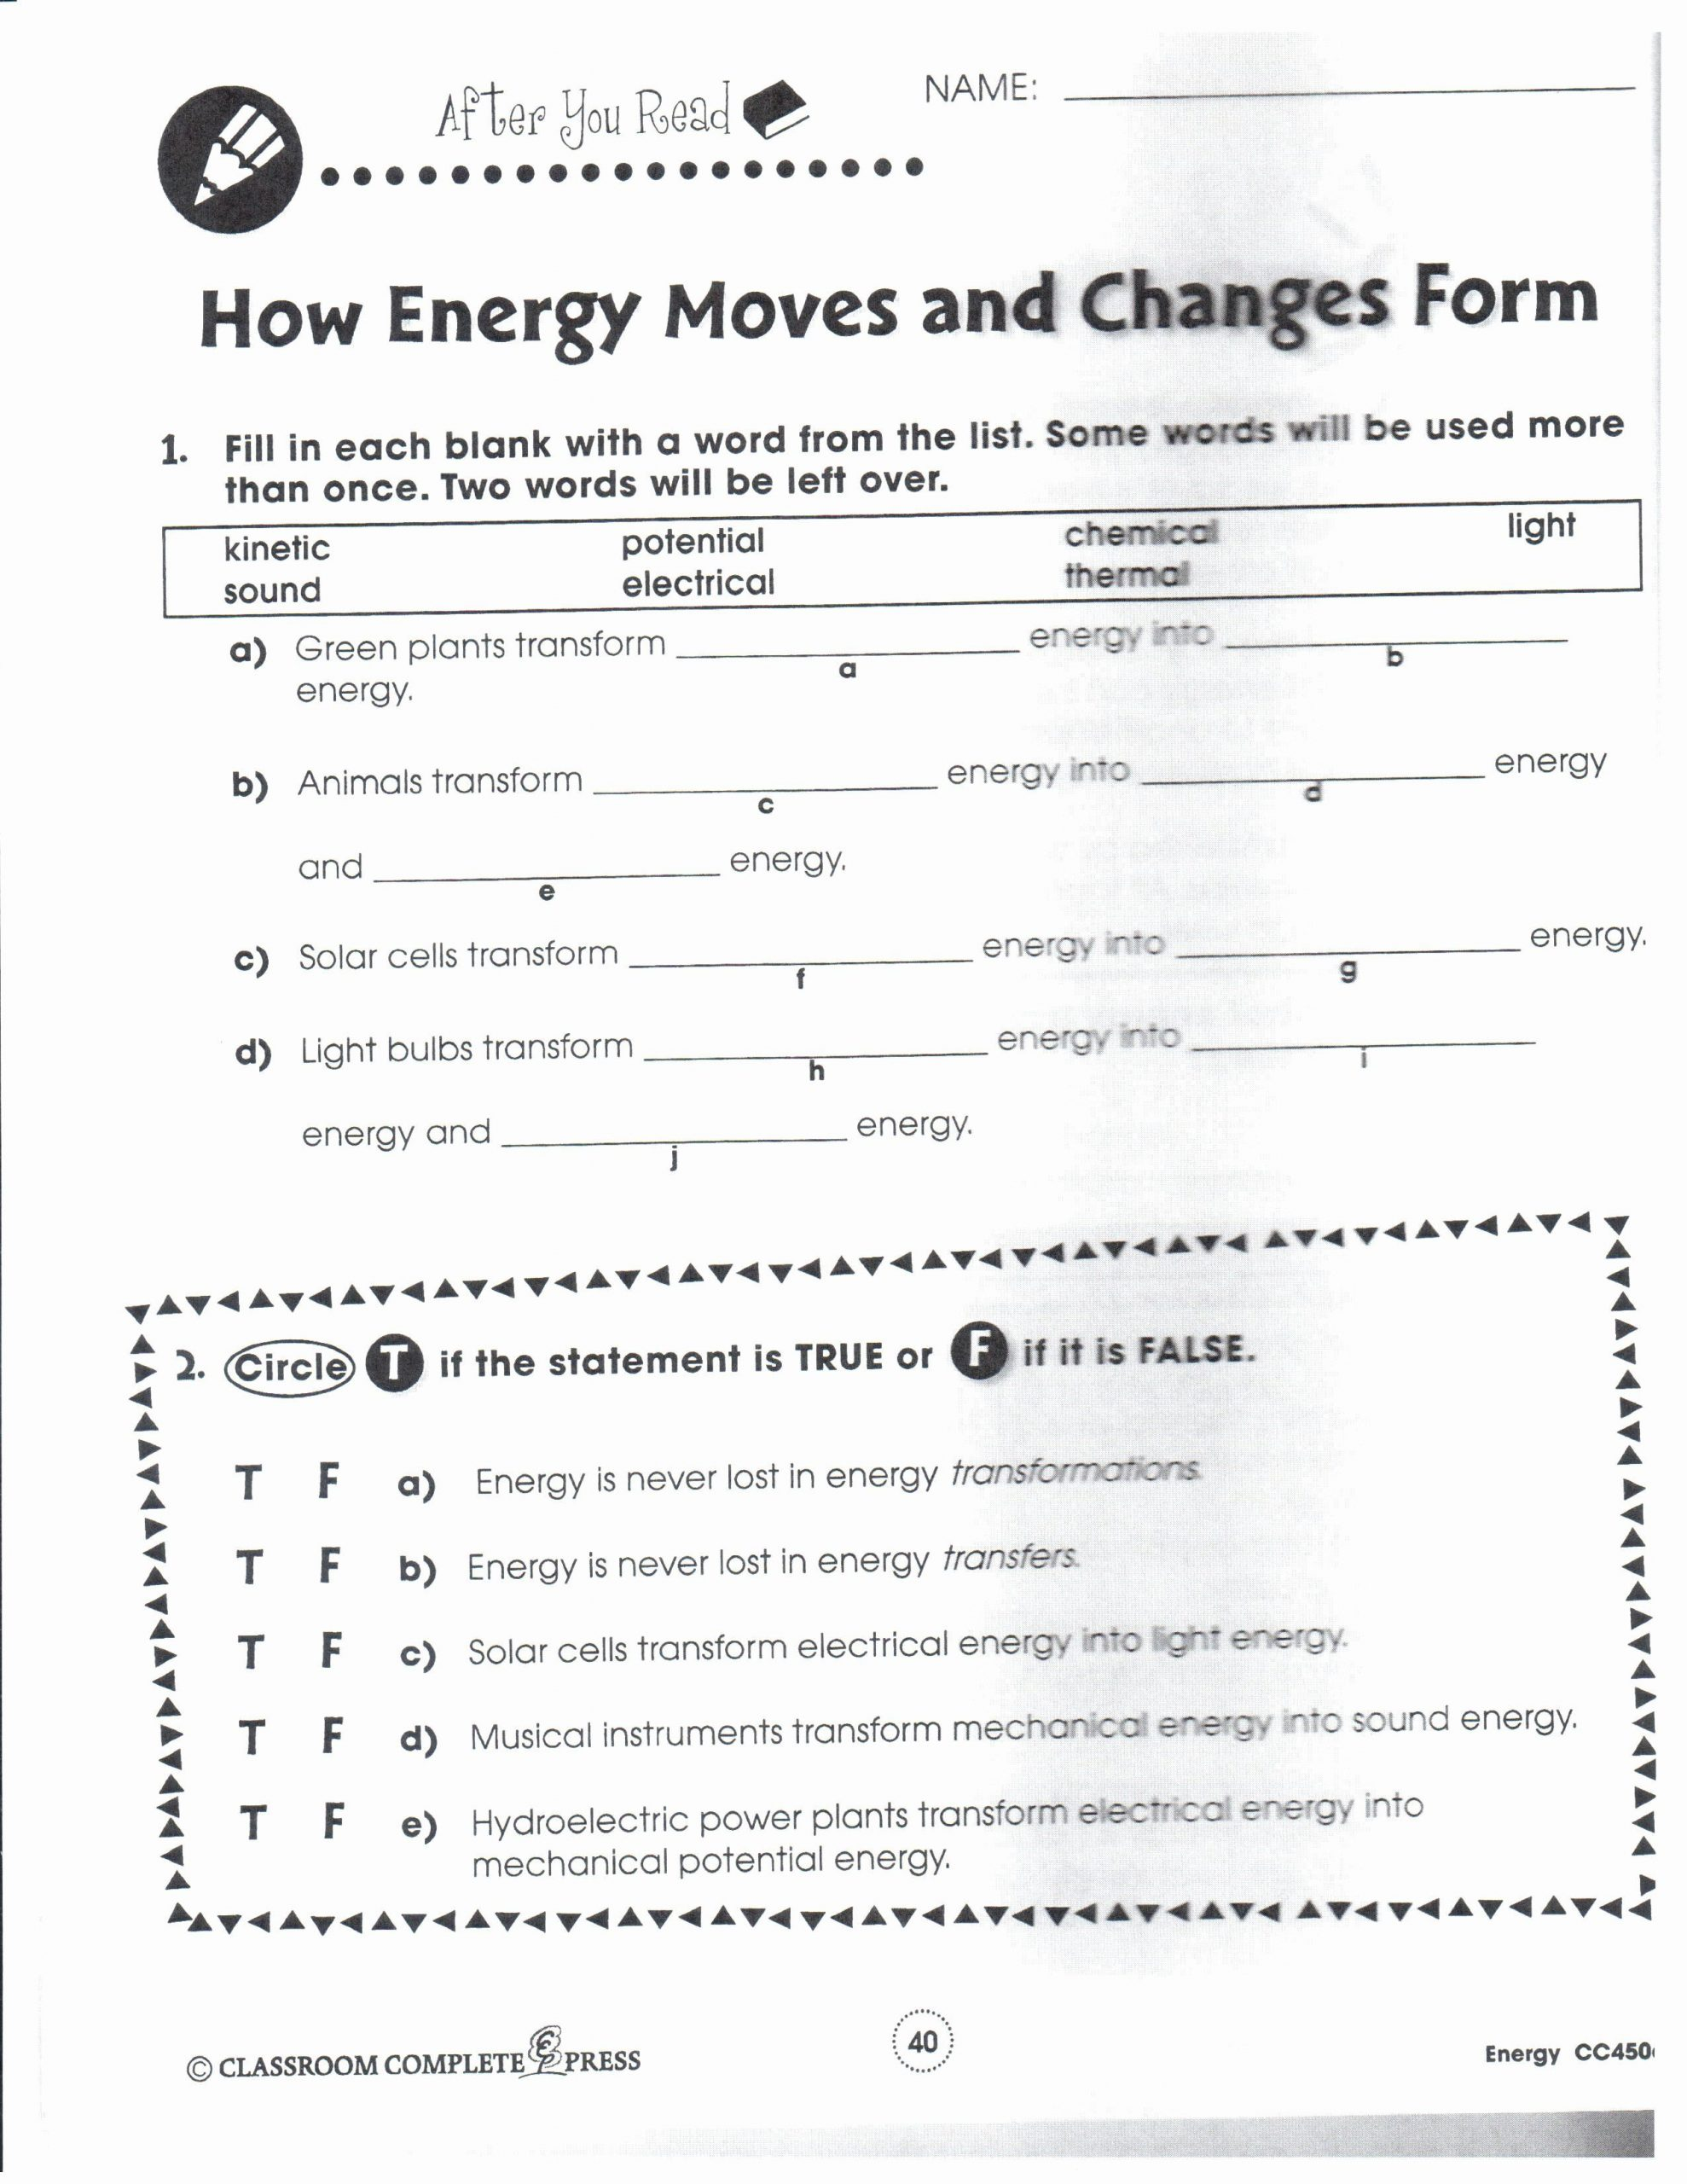 Energy Transformation Worksheet Answers forms Energy Worksheet Answers Inspirational 16 Best